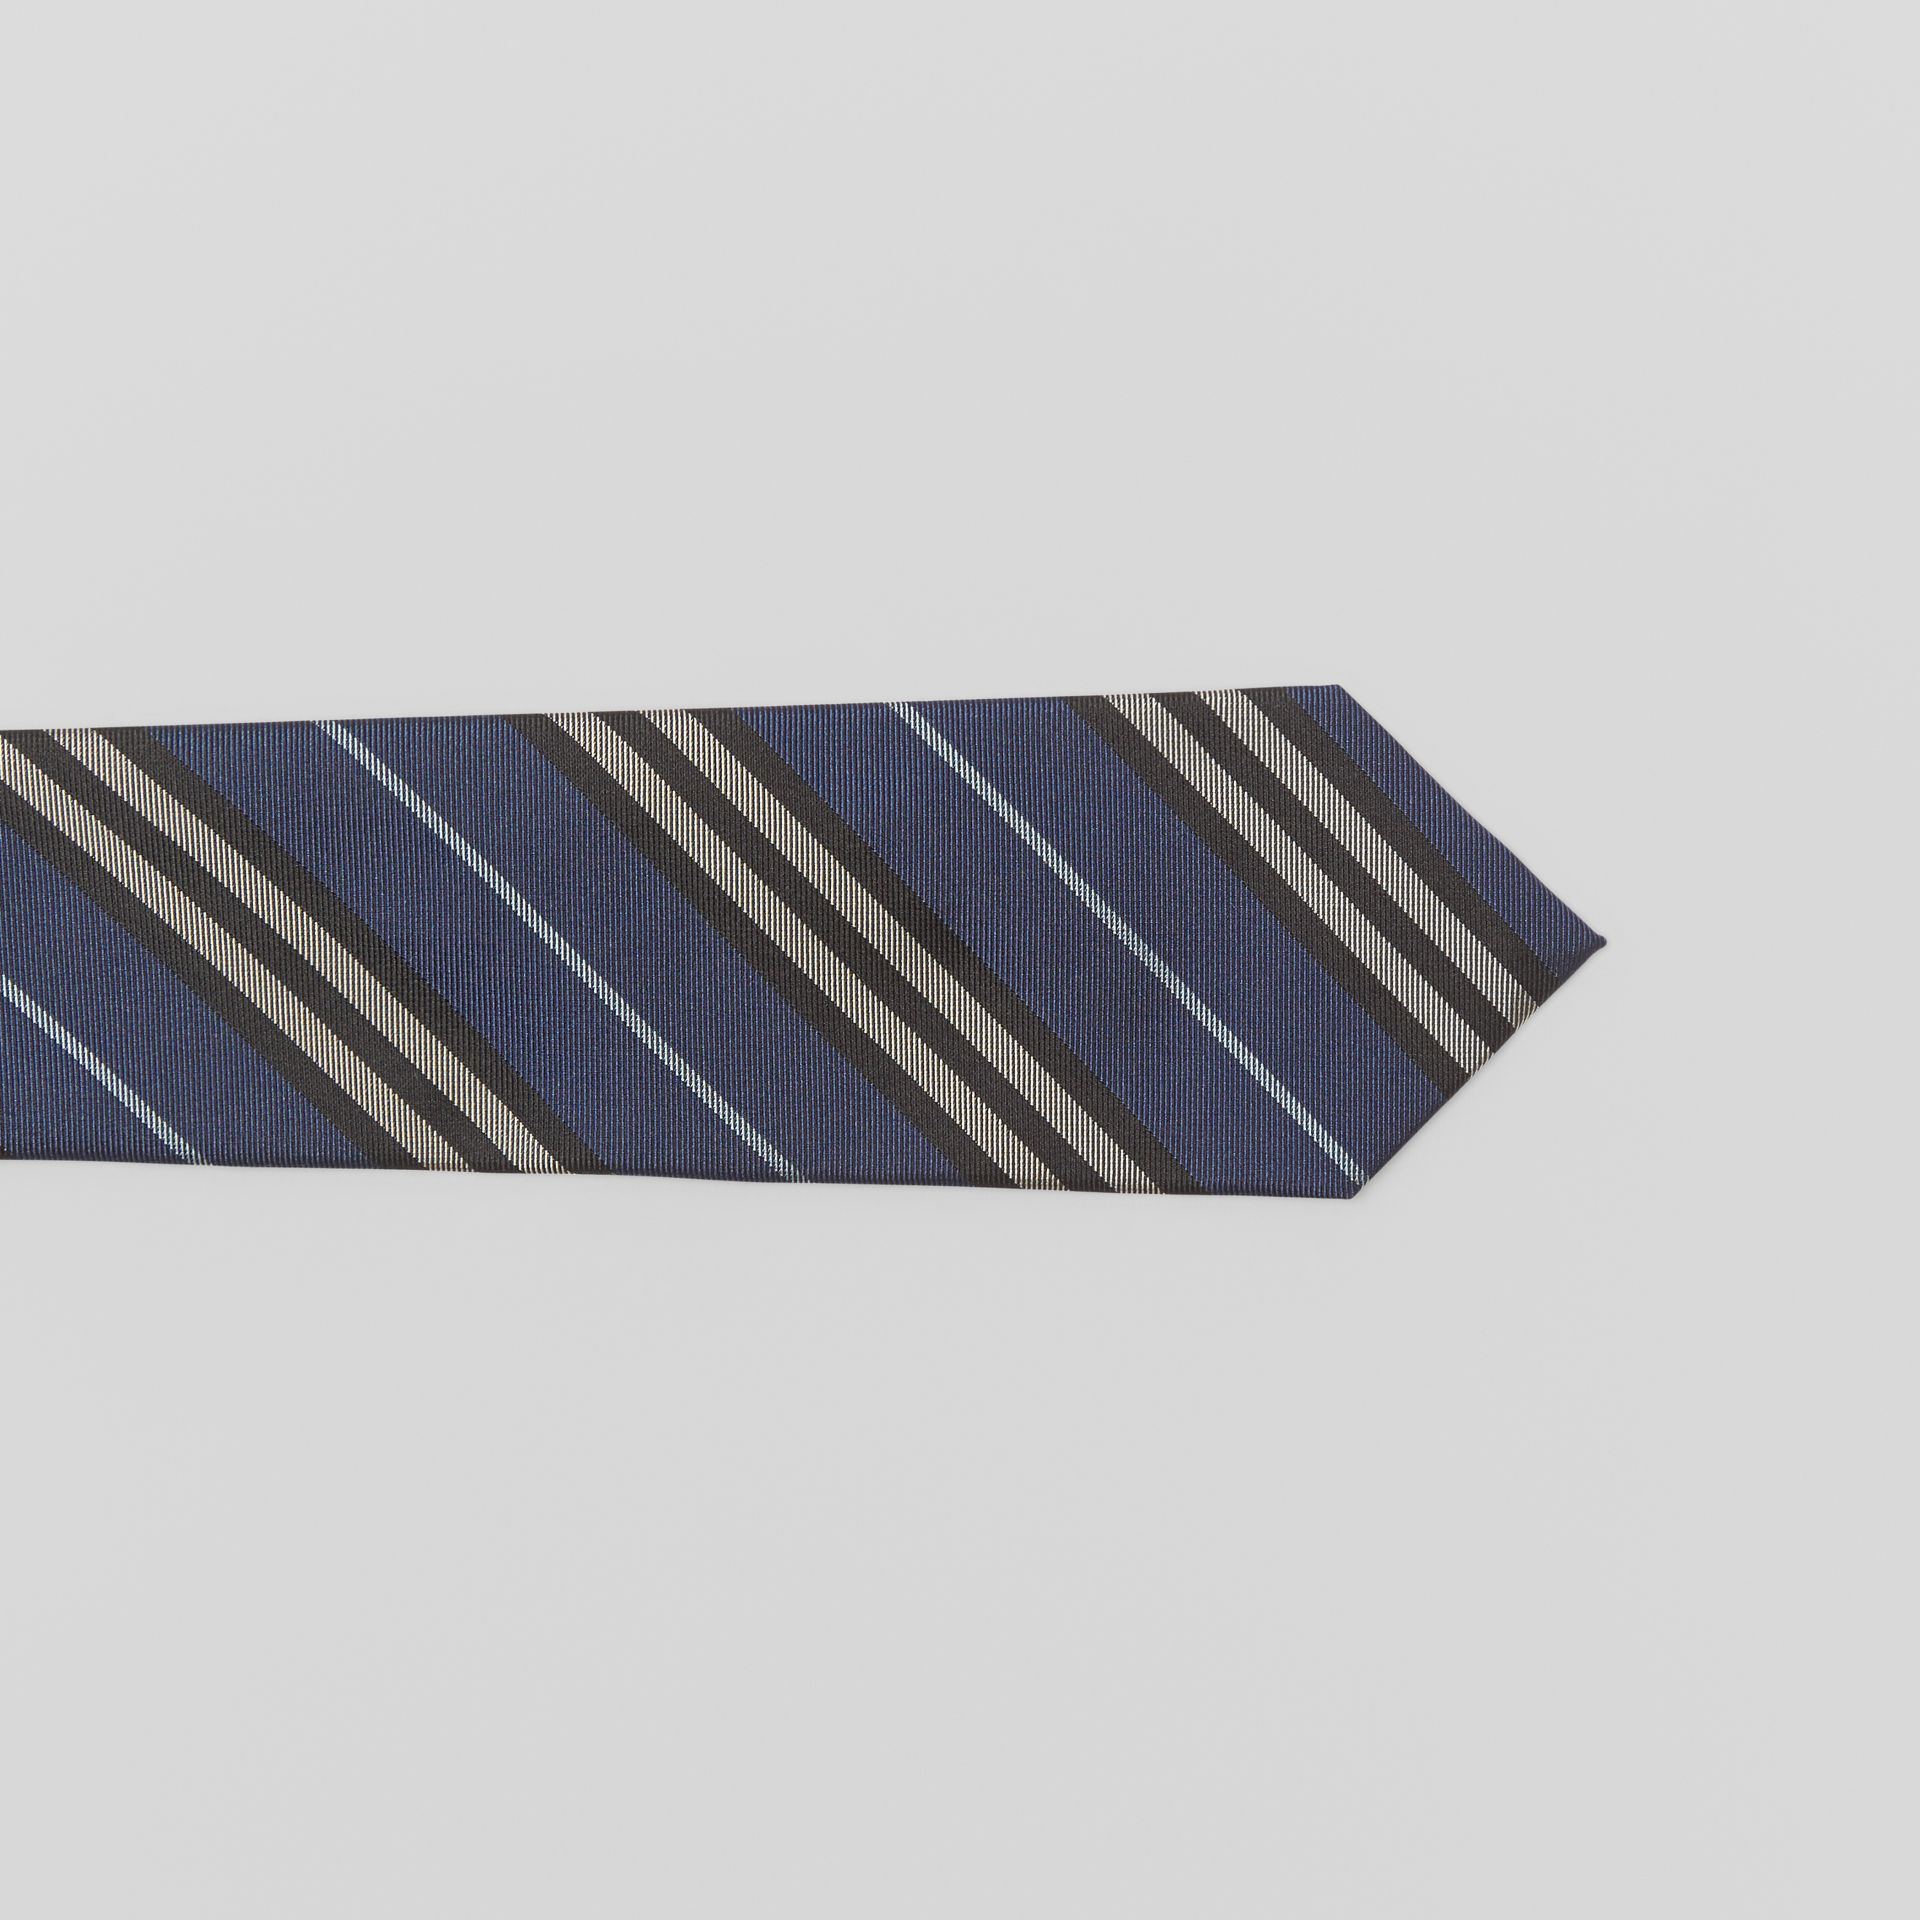 Modern Cut Striped Silk Jacquard Tie in Steel Blue - Men | Burberry Australia - gallery image 1